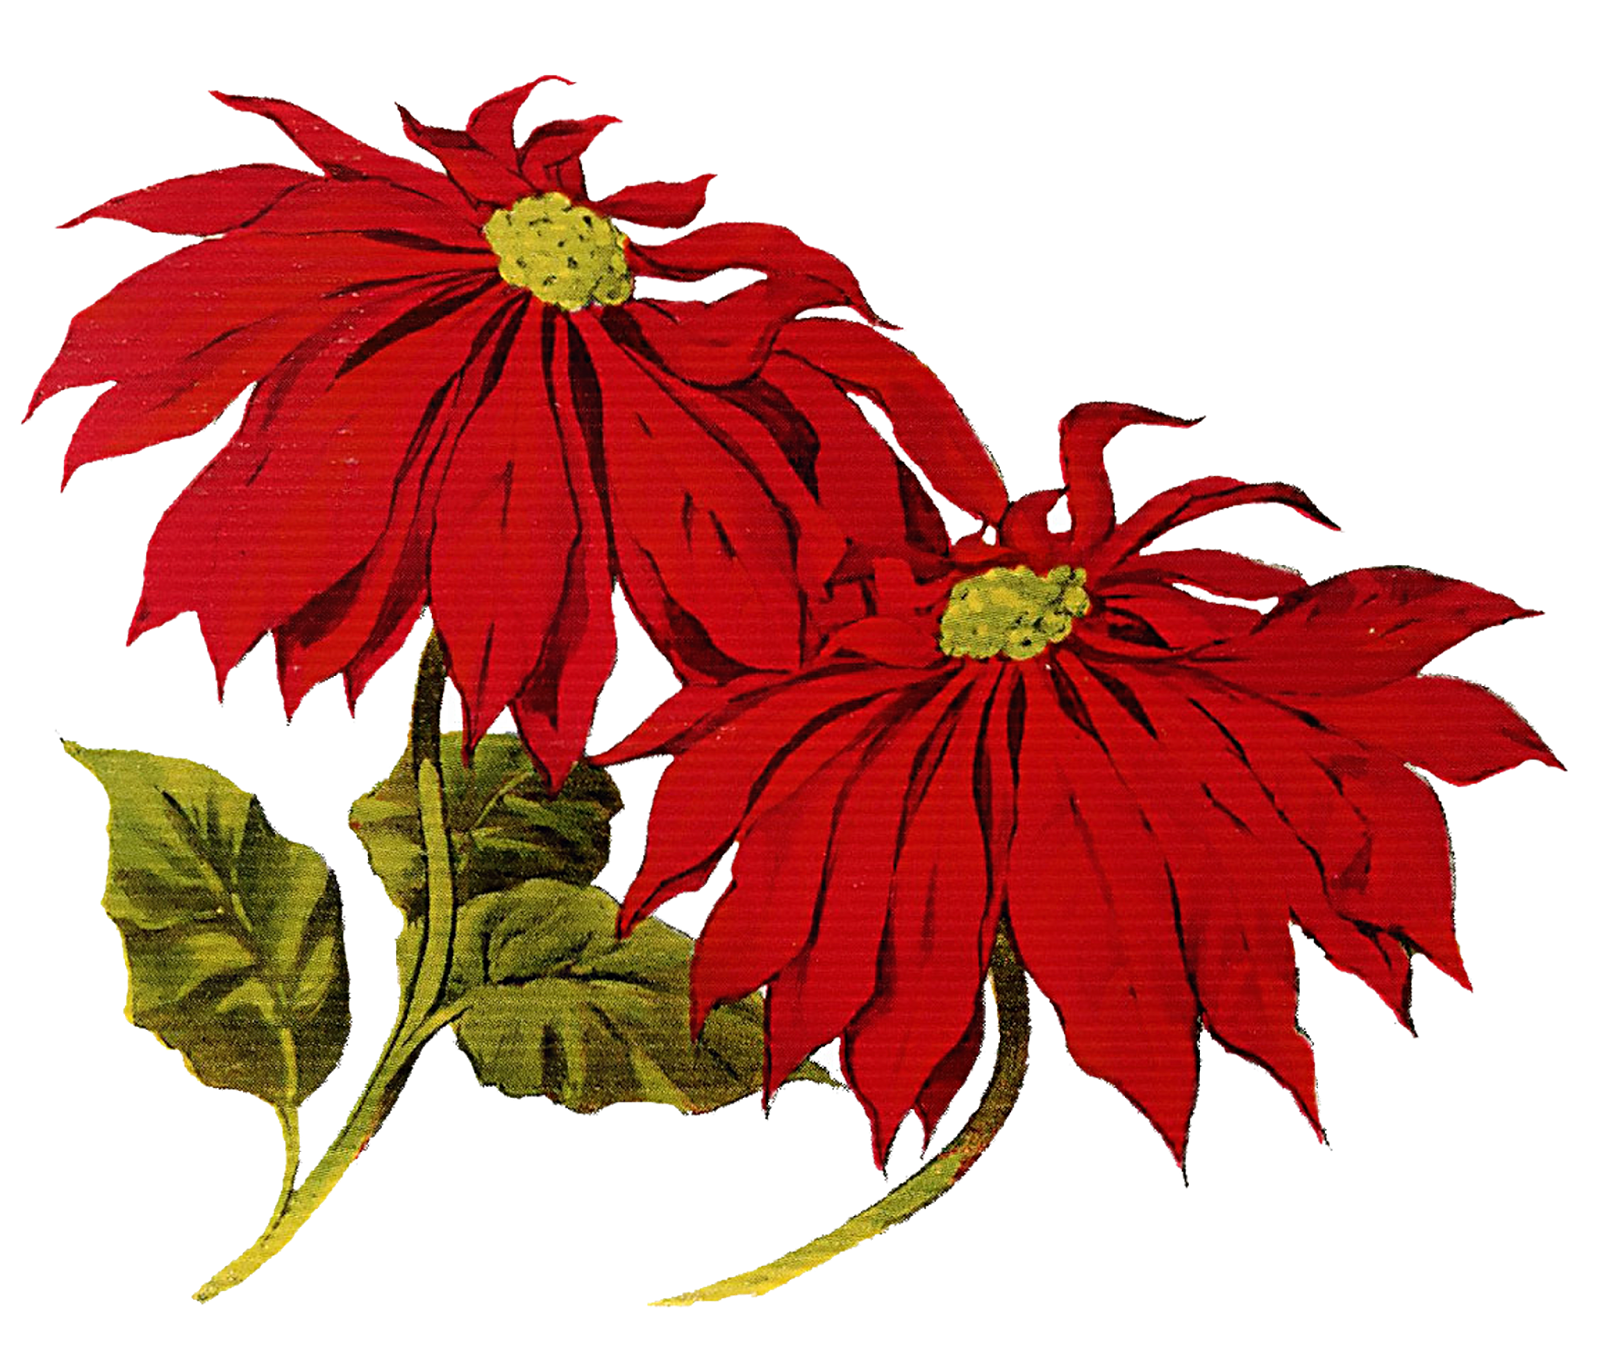 Christmas flowers free clipart jpg royalty free stock Christmas flowers free clipart - ClipartFest jpg royalty free stock